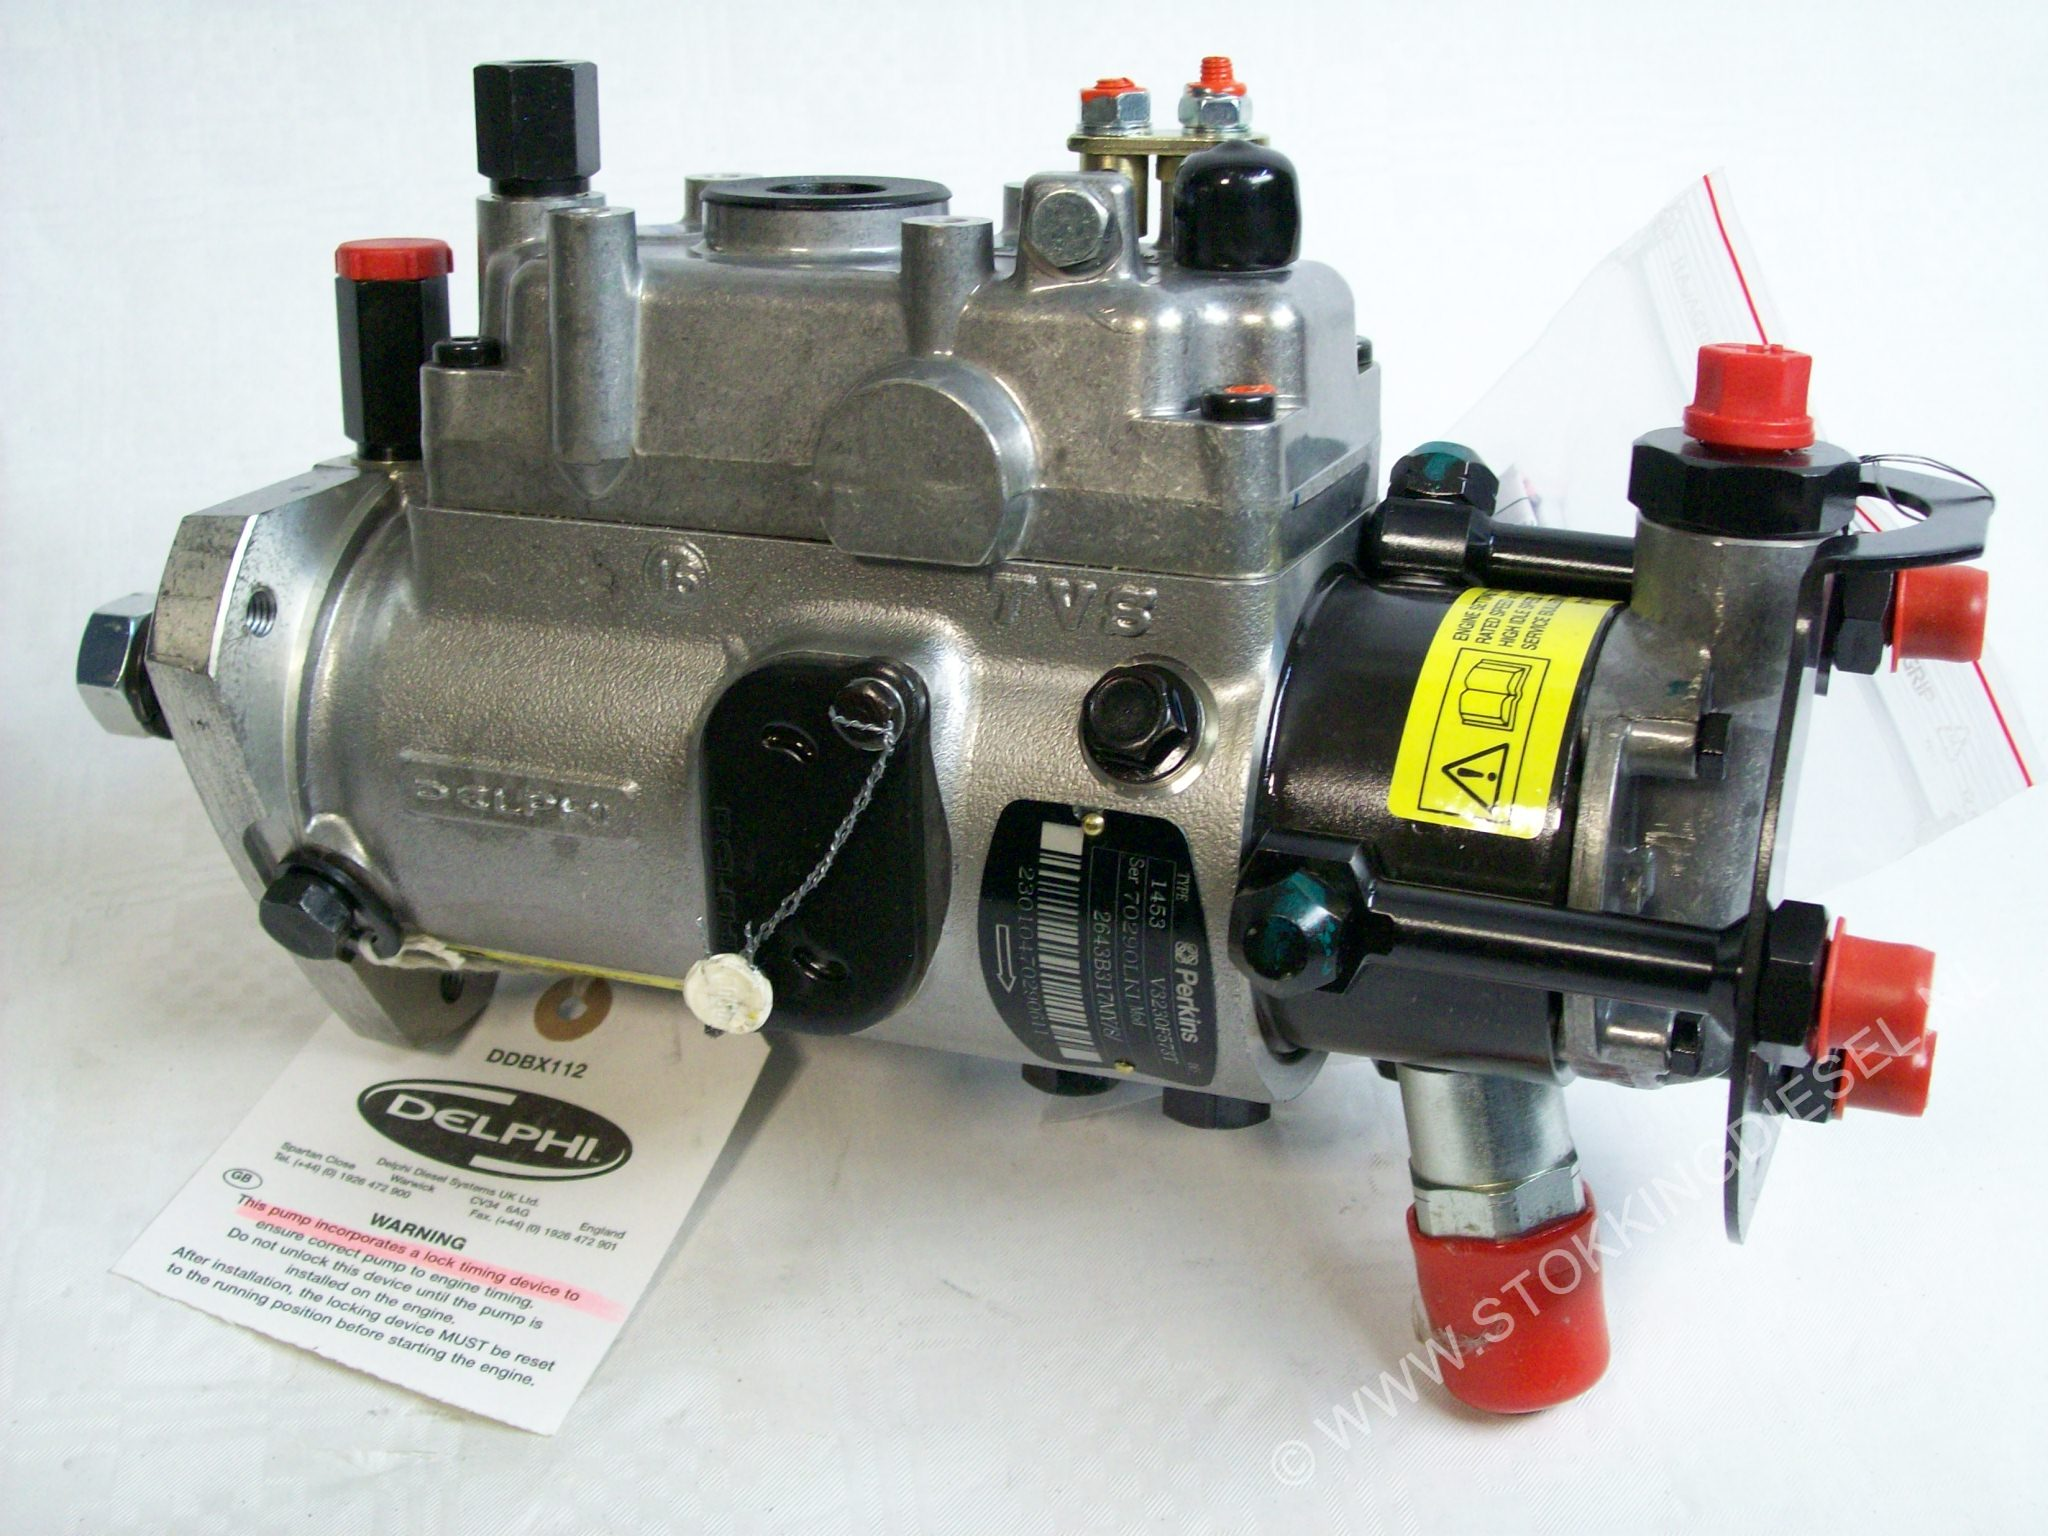 Search Results - delphi - Dieselservice Stokking BV